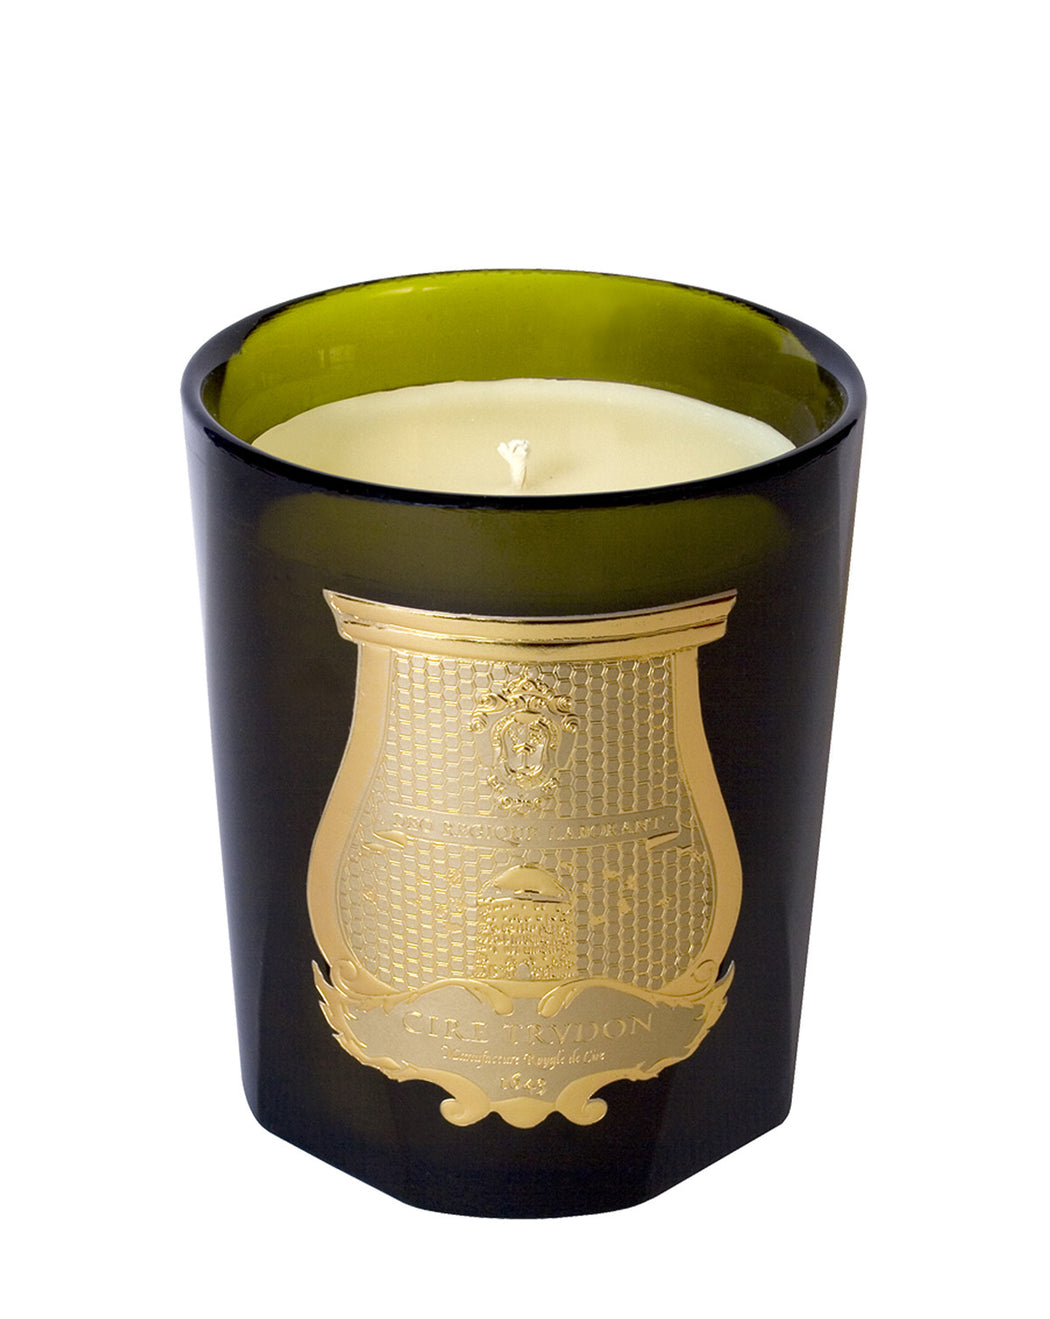 CIRE TRUDON CANDLE 270g Candle BYRON